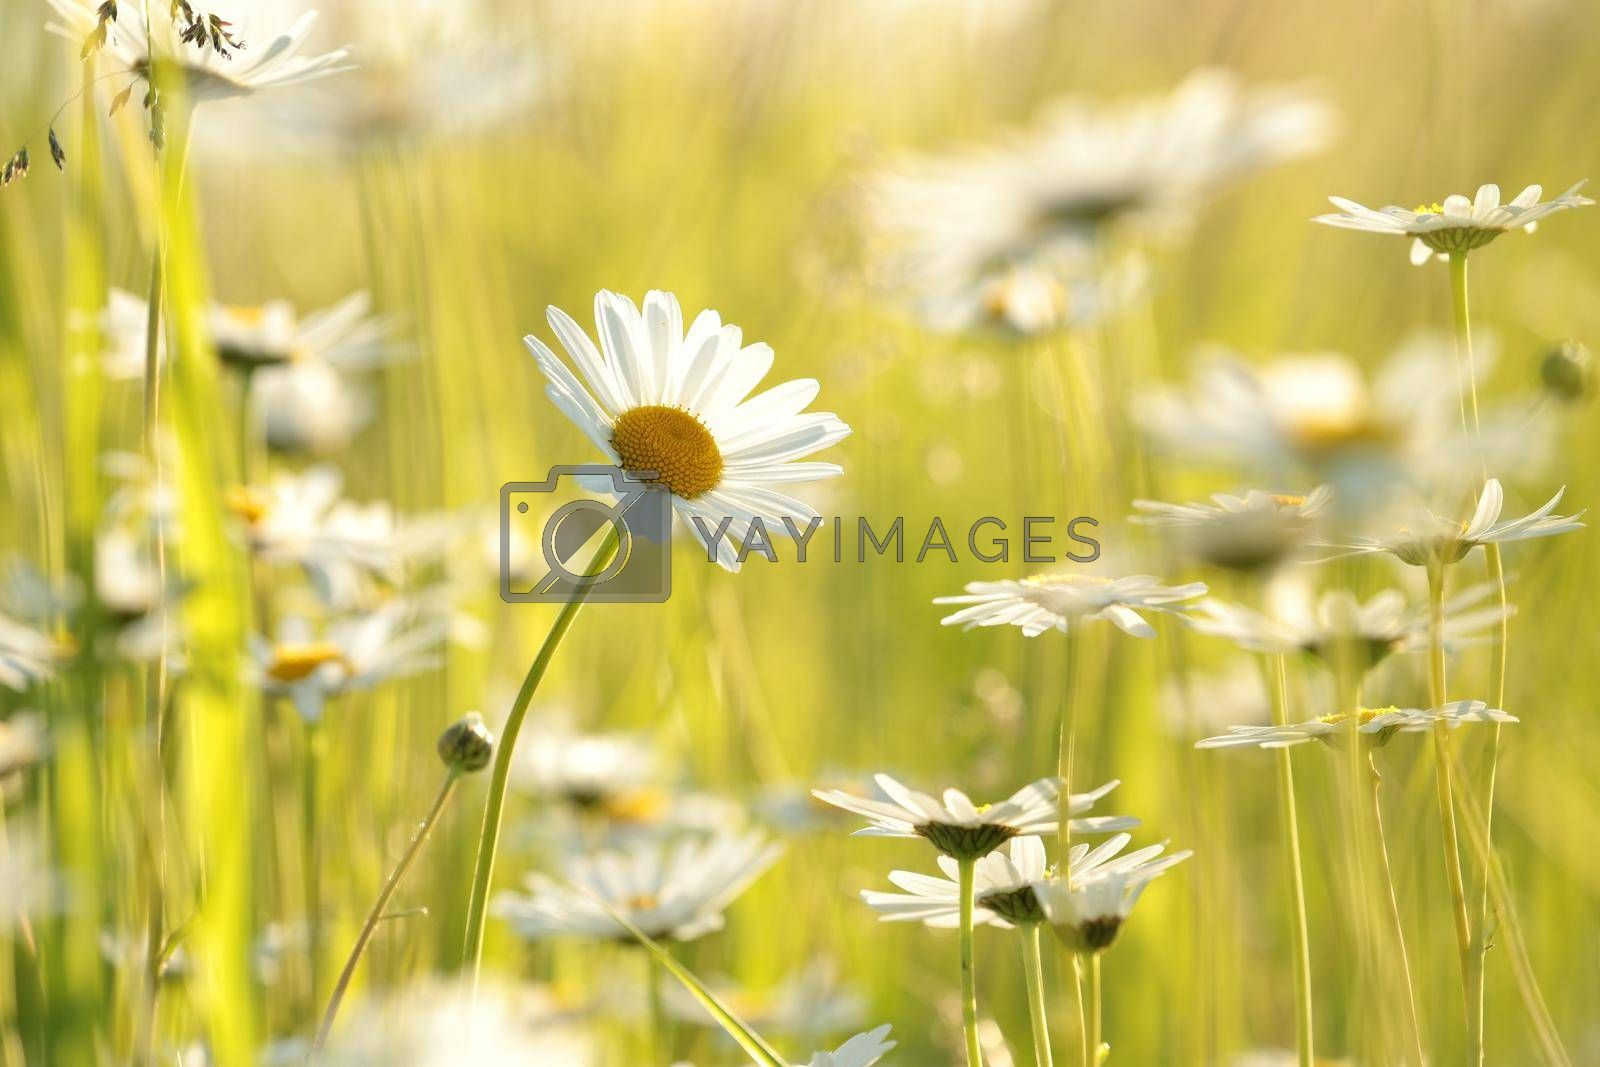 Daisies on a spring meadow at sunrise